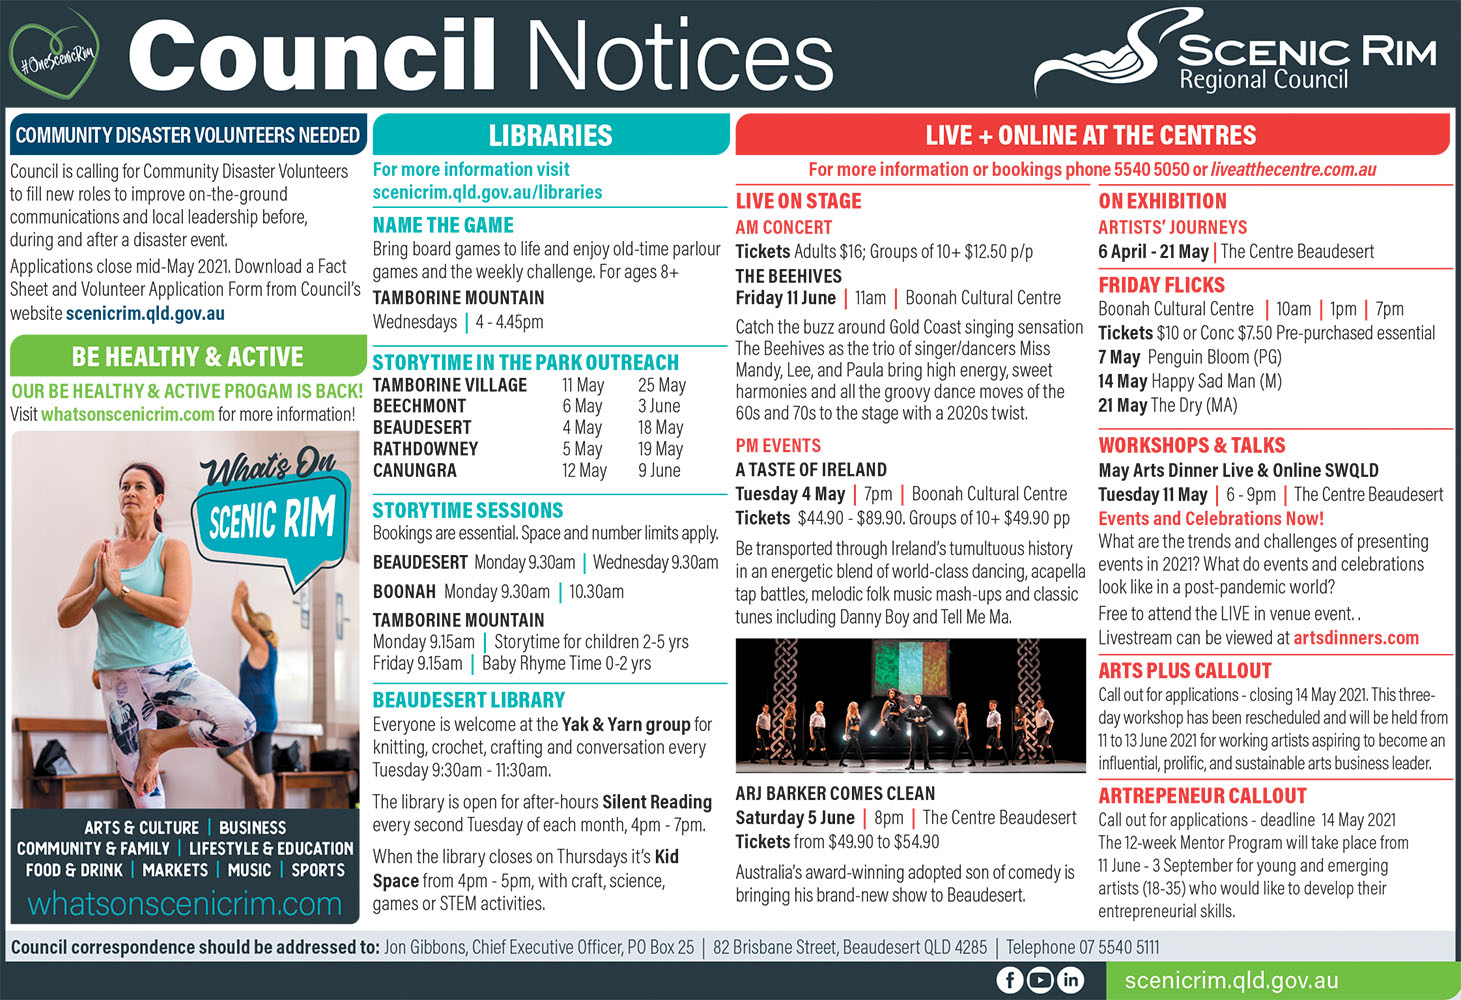 Scenic Rim Regional Council Notices For May 2021